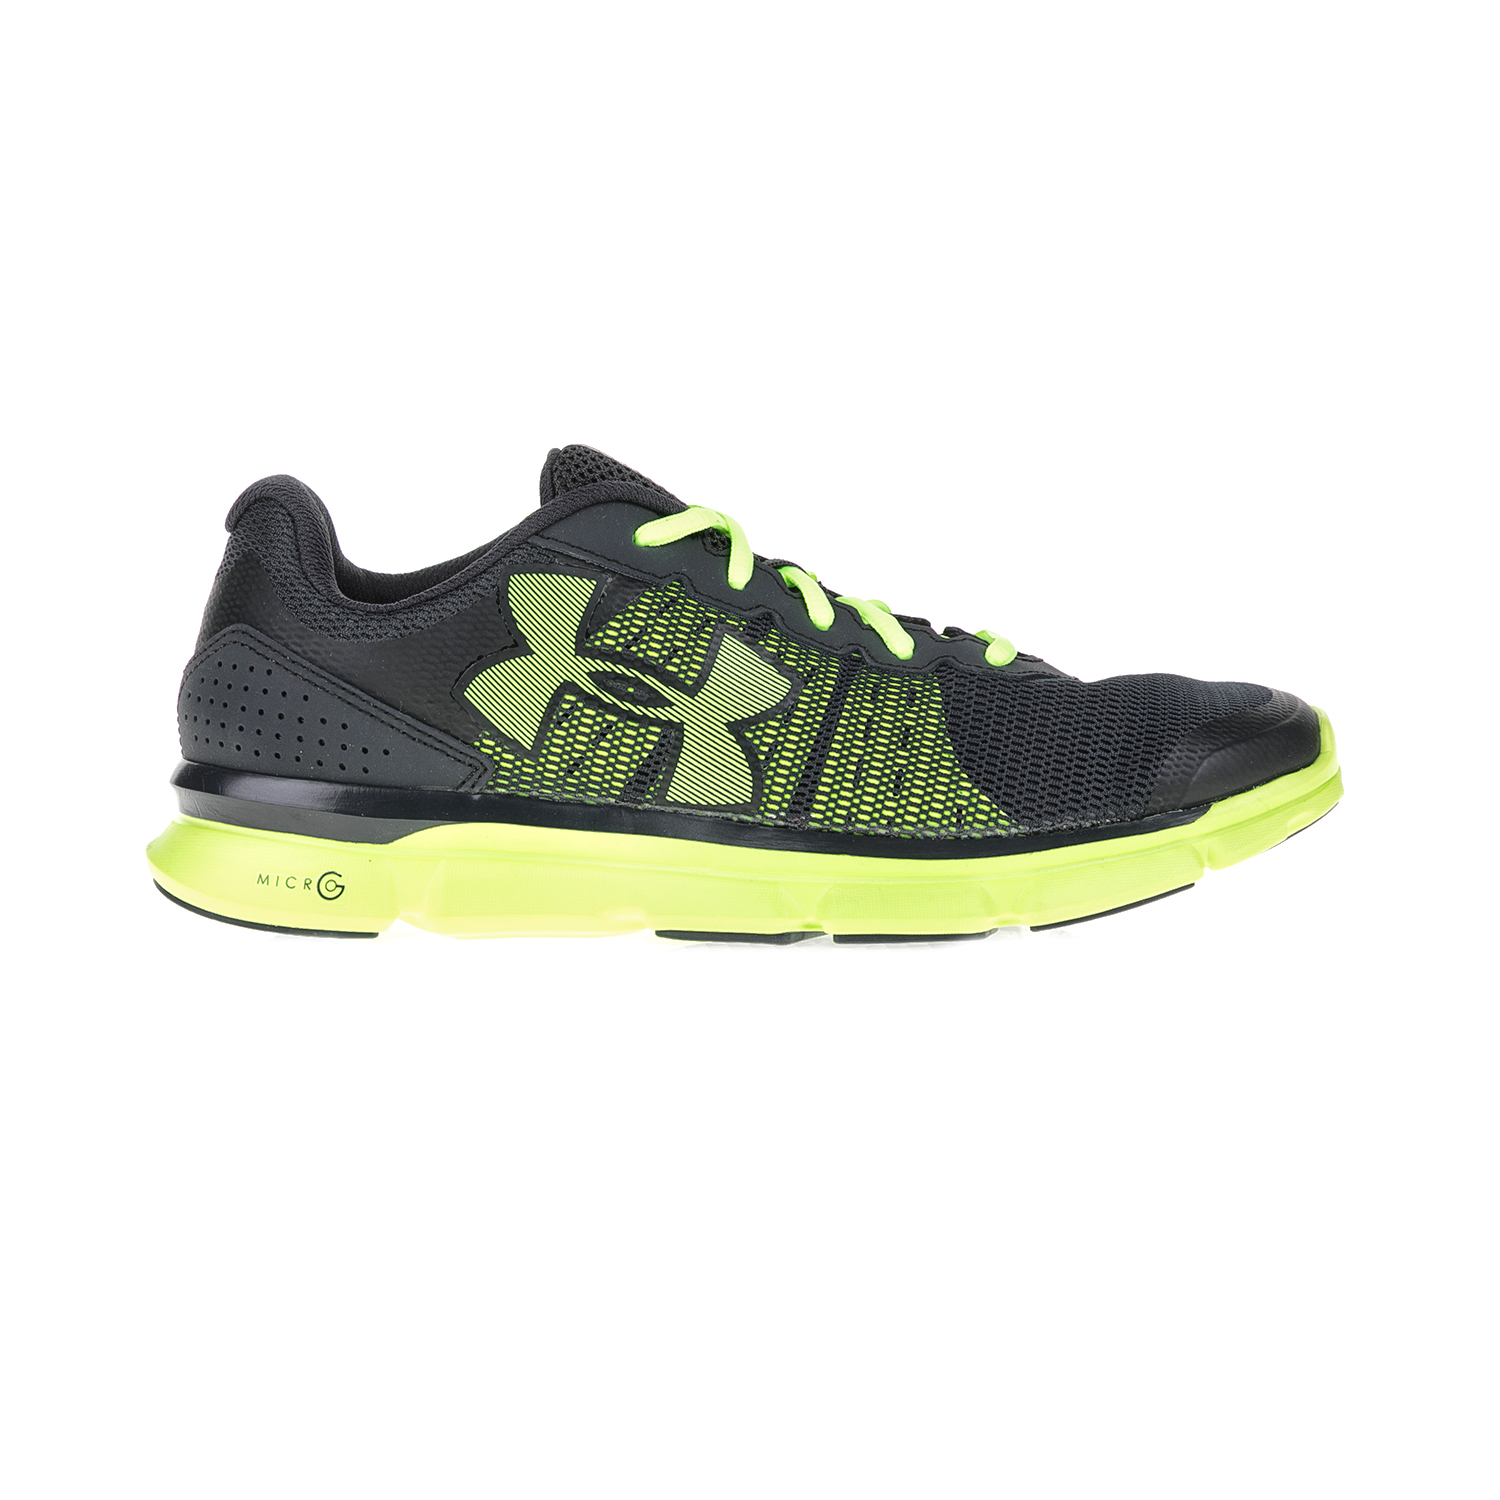 UNDER ARMOUR – Ανδρικά αθλητικά παπούτσια UNDER ARMOUR MICRO G SPEED SWIFT μαύρα-πράσινα